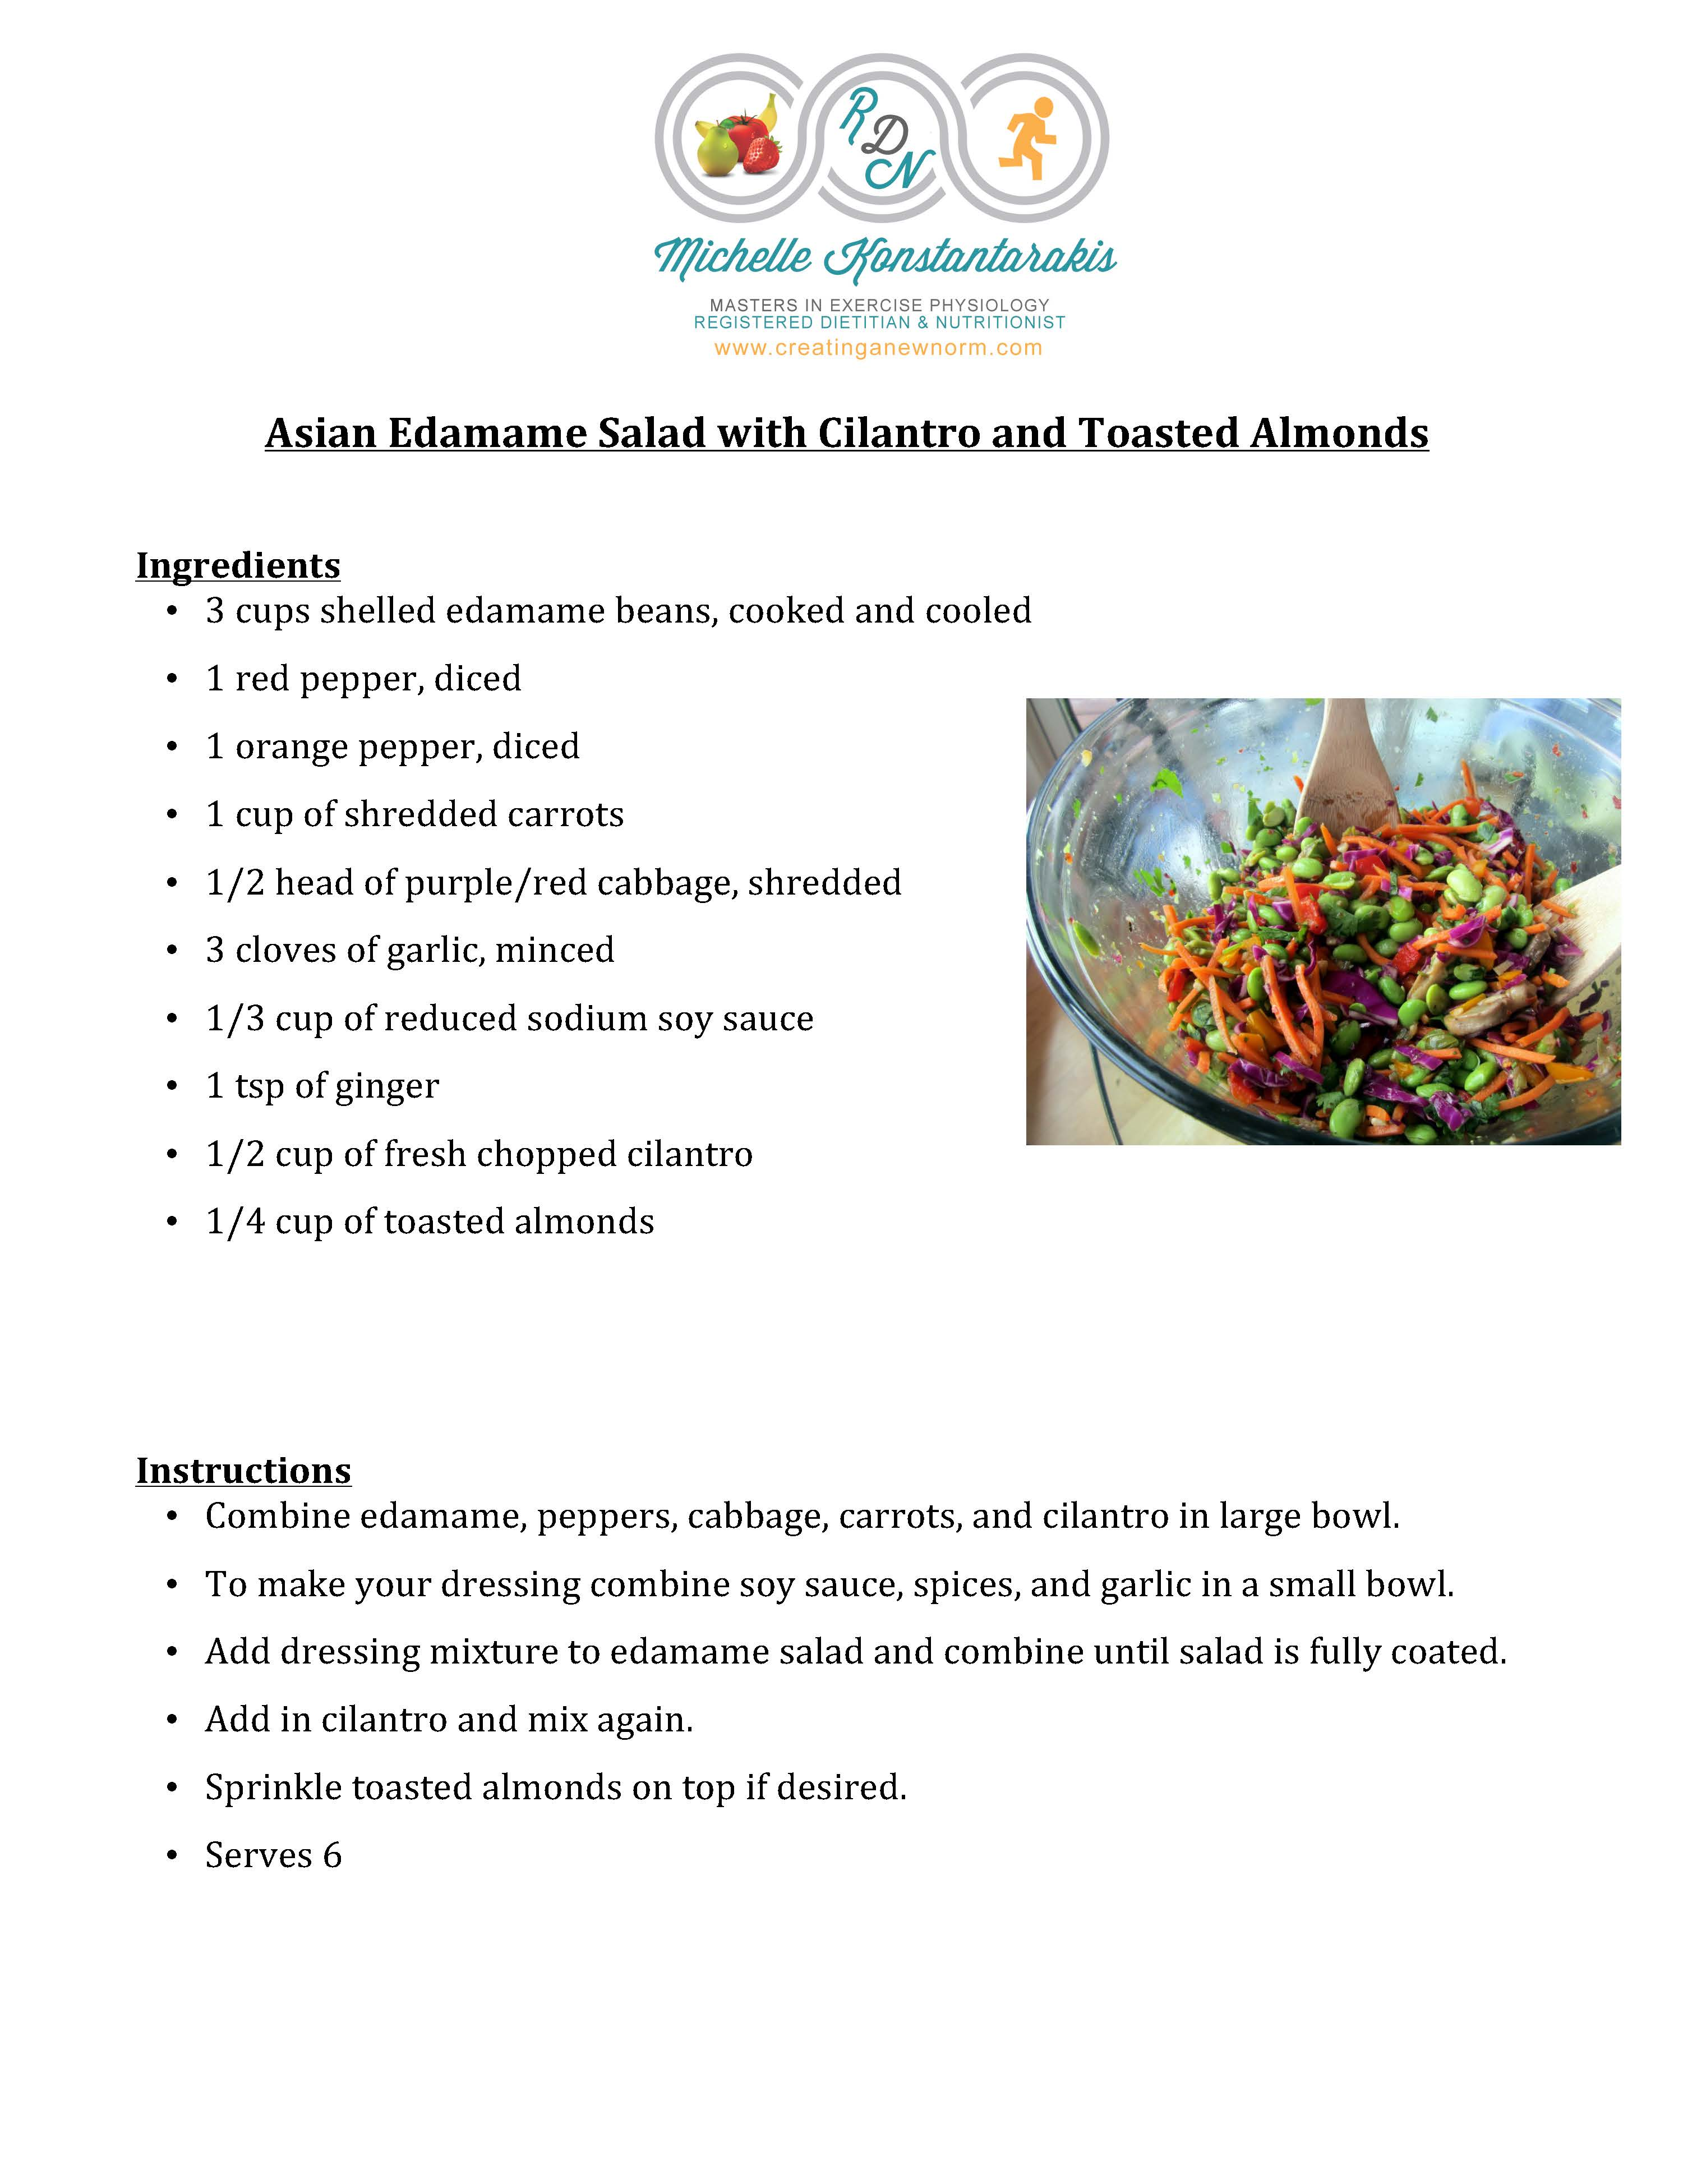 Recipe_Asian_Edamame_Salad_with_Cilantro_and_Toasted_Almonds_Page_1